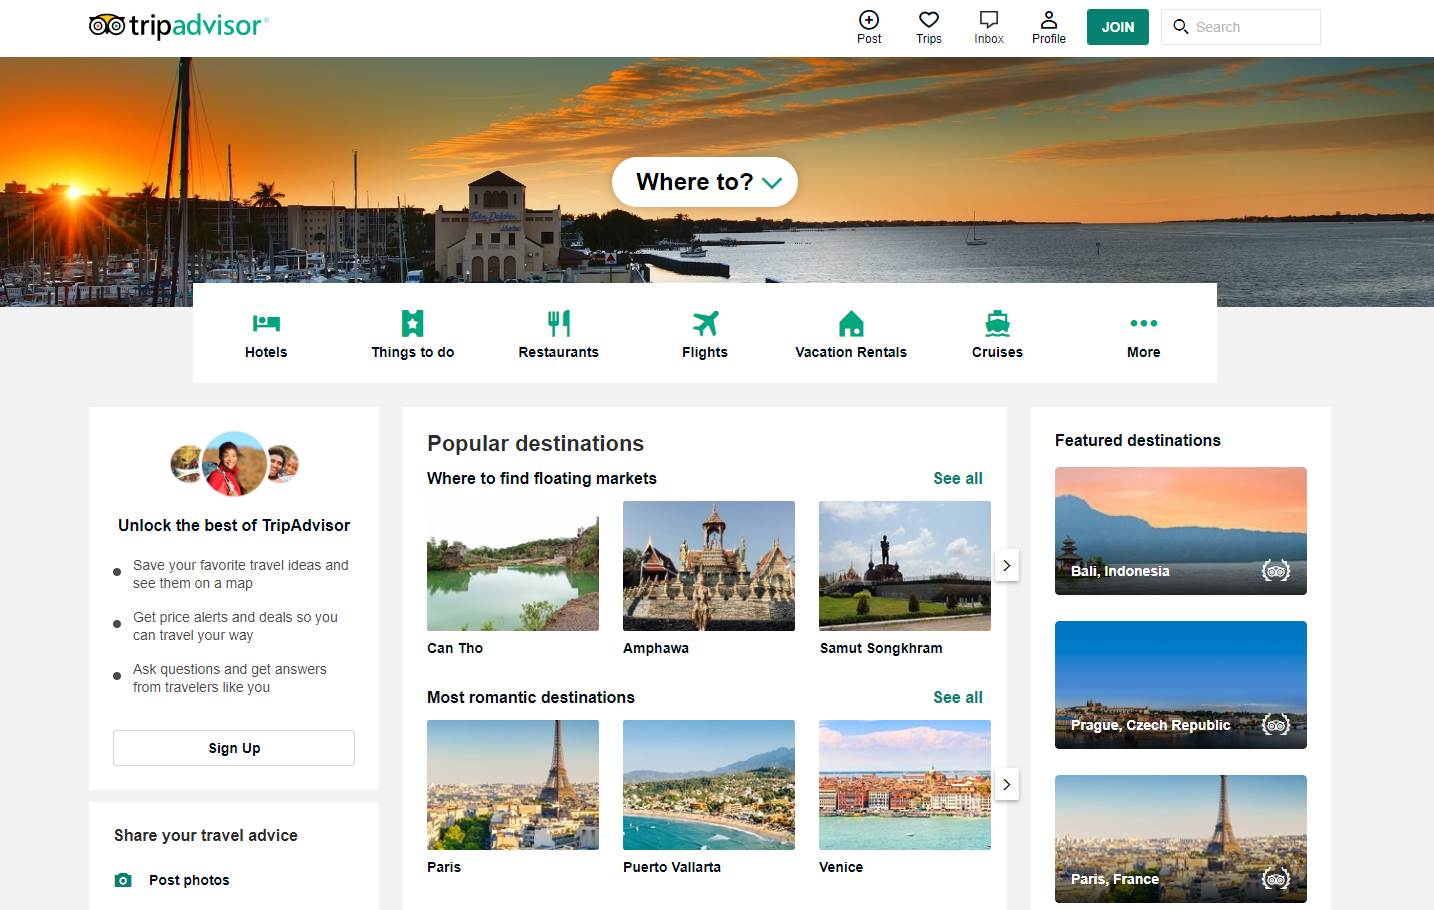 tripadvisor expedia alternative